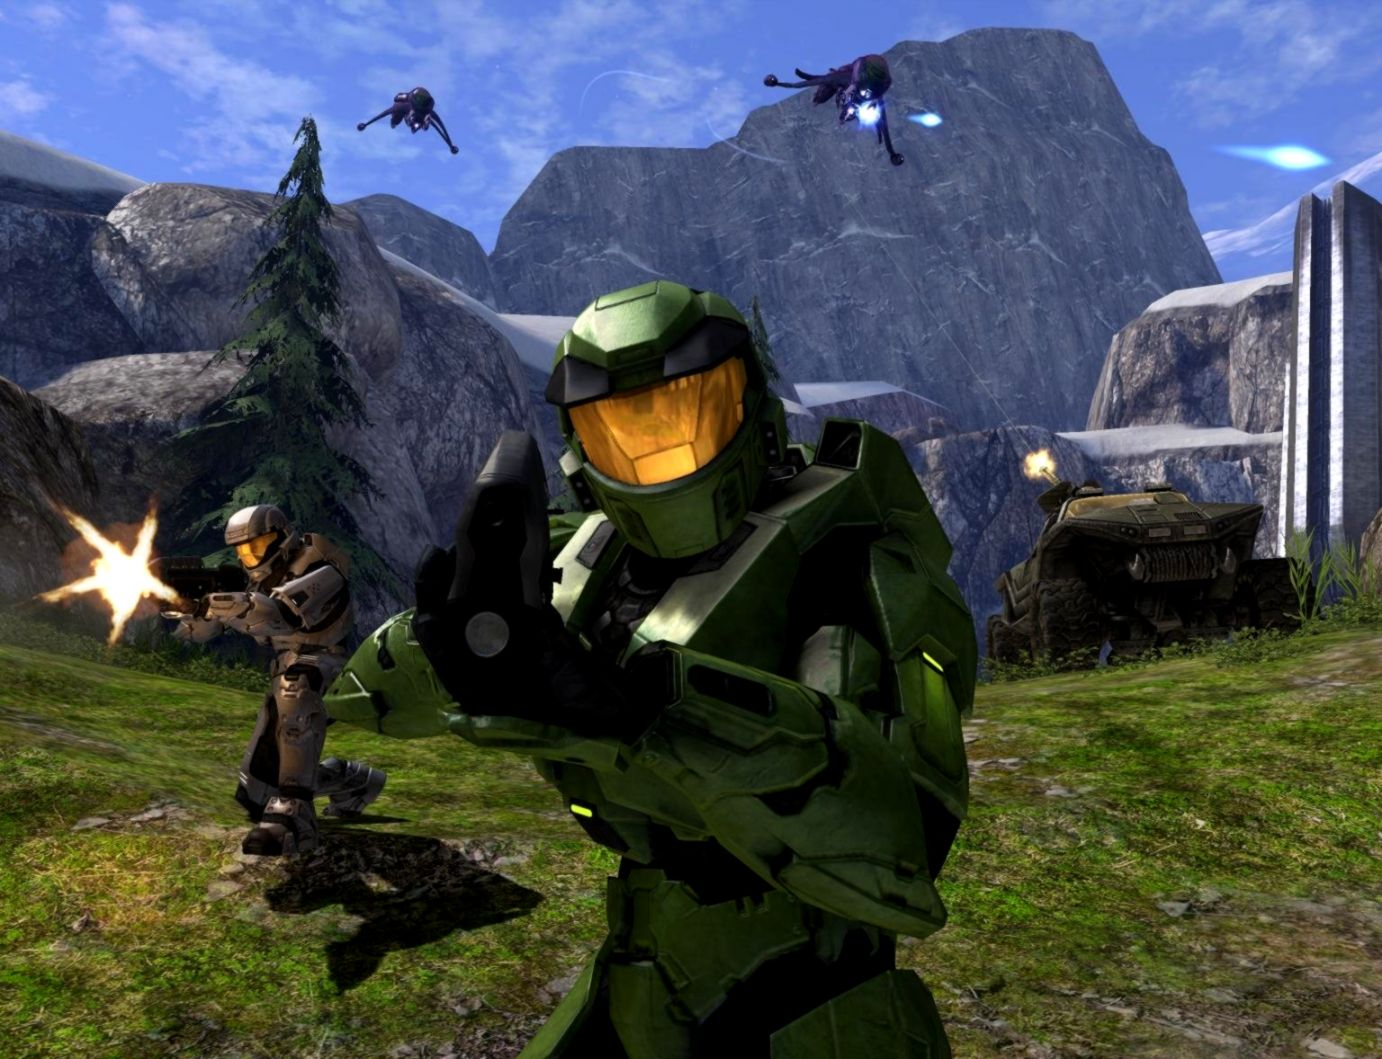 Halo 1 Combat Evolved Hd Wallpaper Wallpapers Sheet 1382x1059